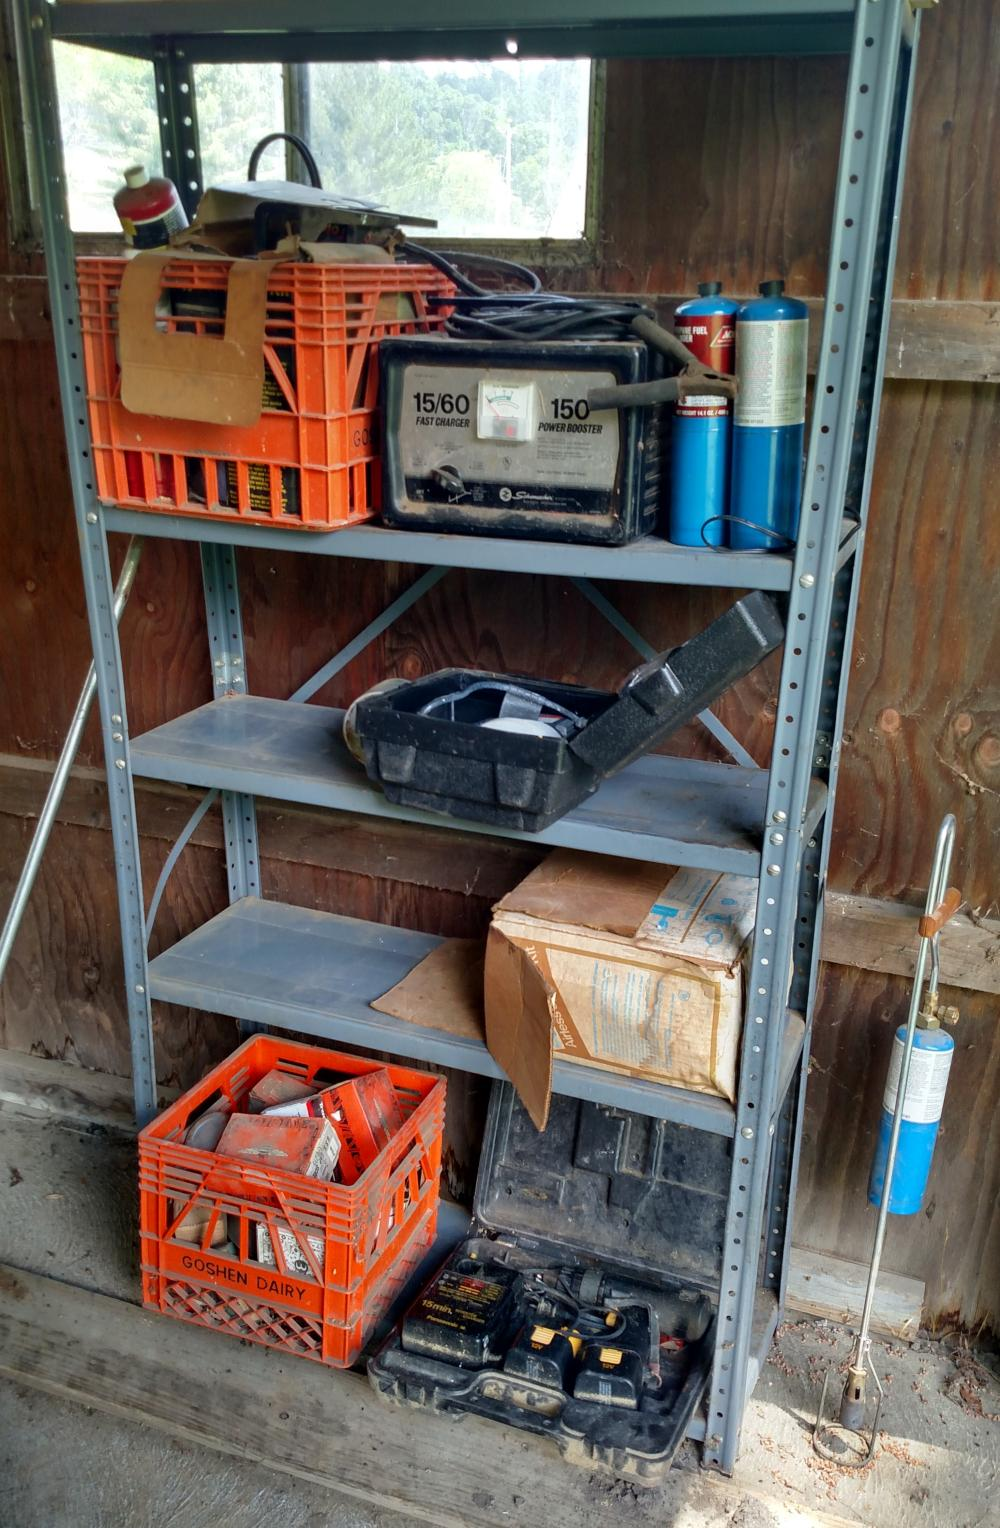 metal shelf and contents - battery booster, cordless drill, nuts and bolts, Goshen Dairy crate